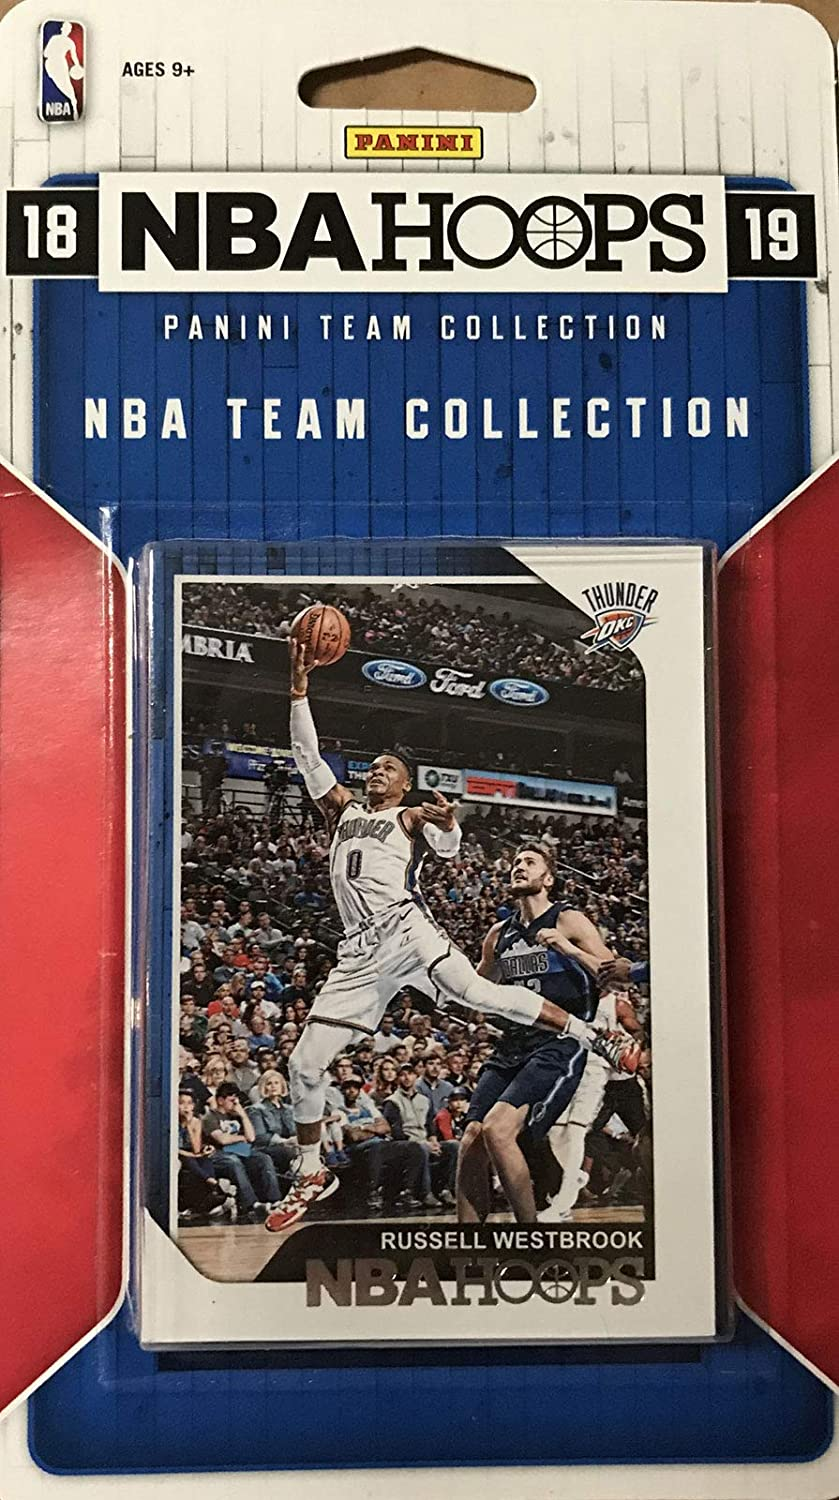 Oklahoma City Thunder 2018 2019 Hoops Basketball Factory Sealed 9 Card NBA Licensed Team Set with Russell Westbrook and Paul George Plus